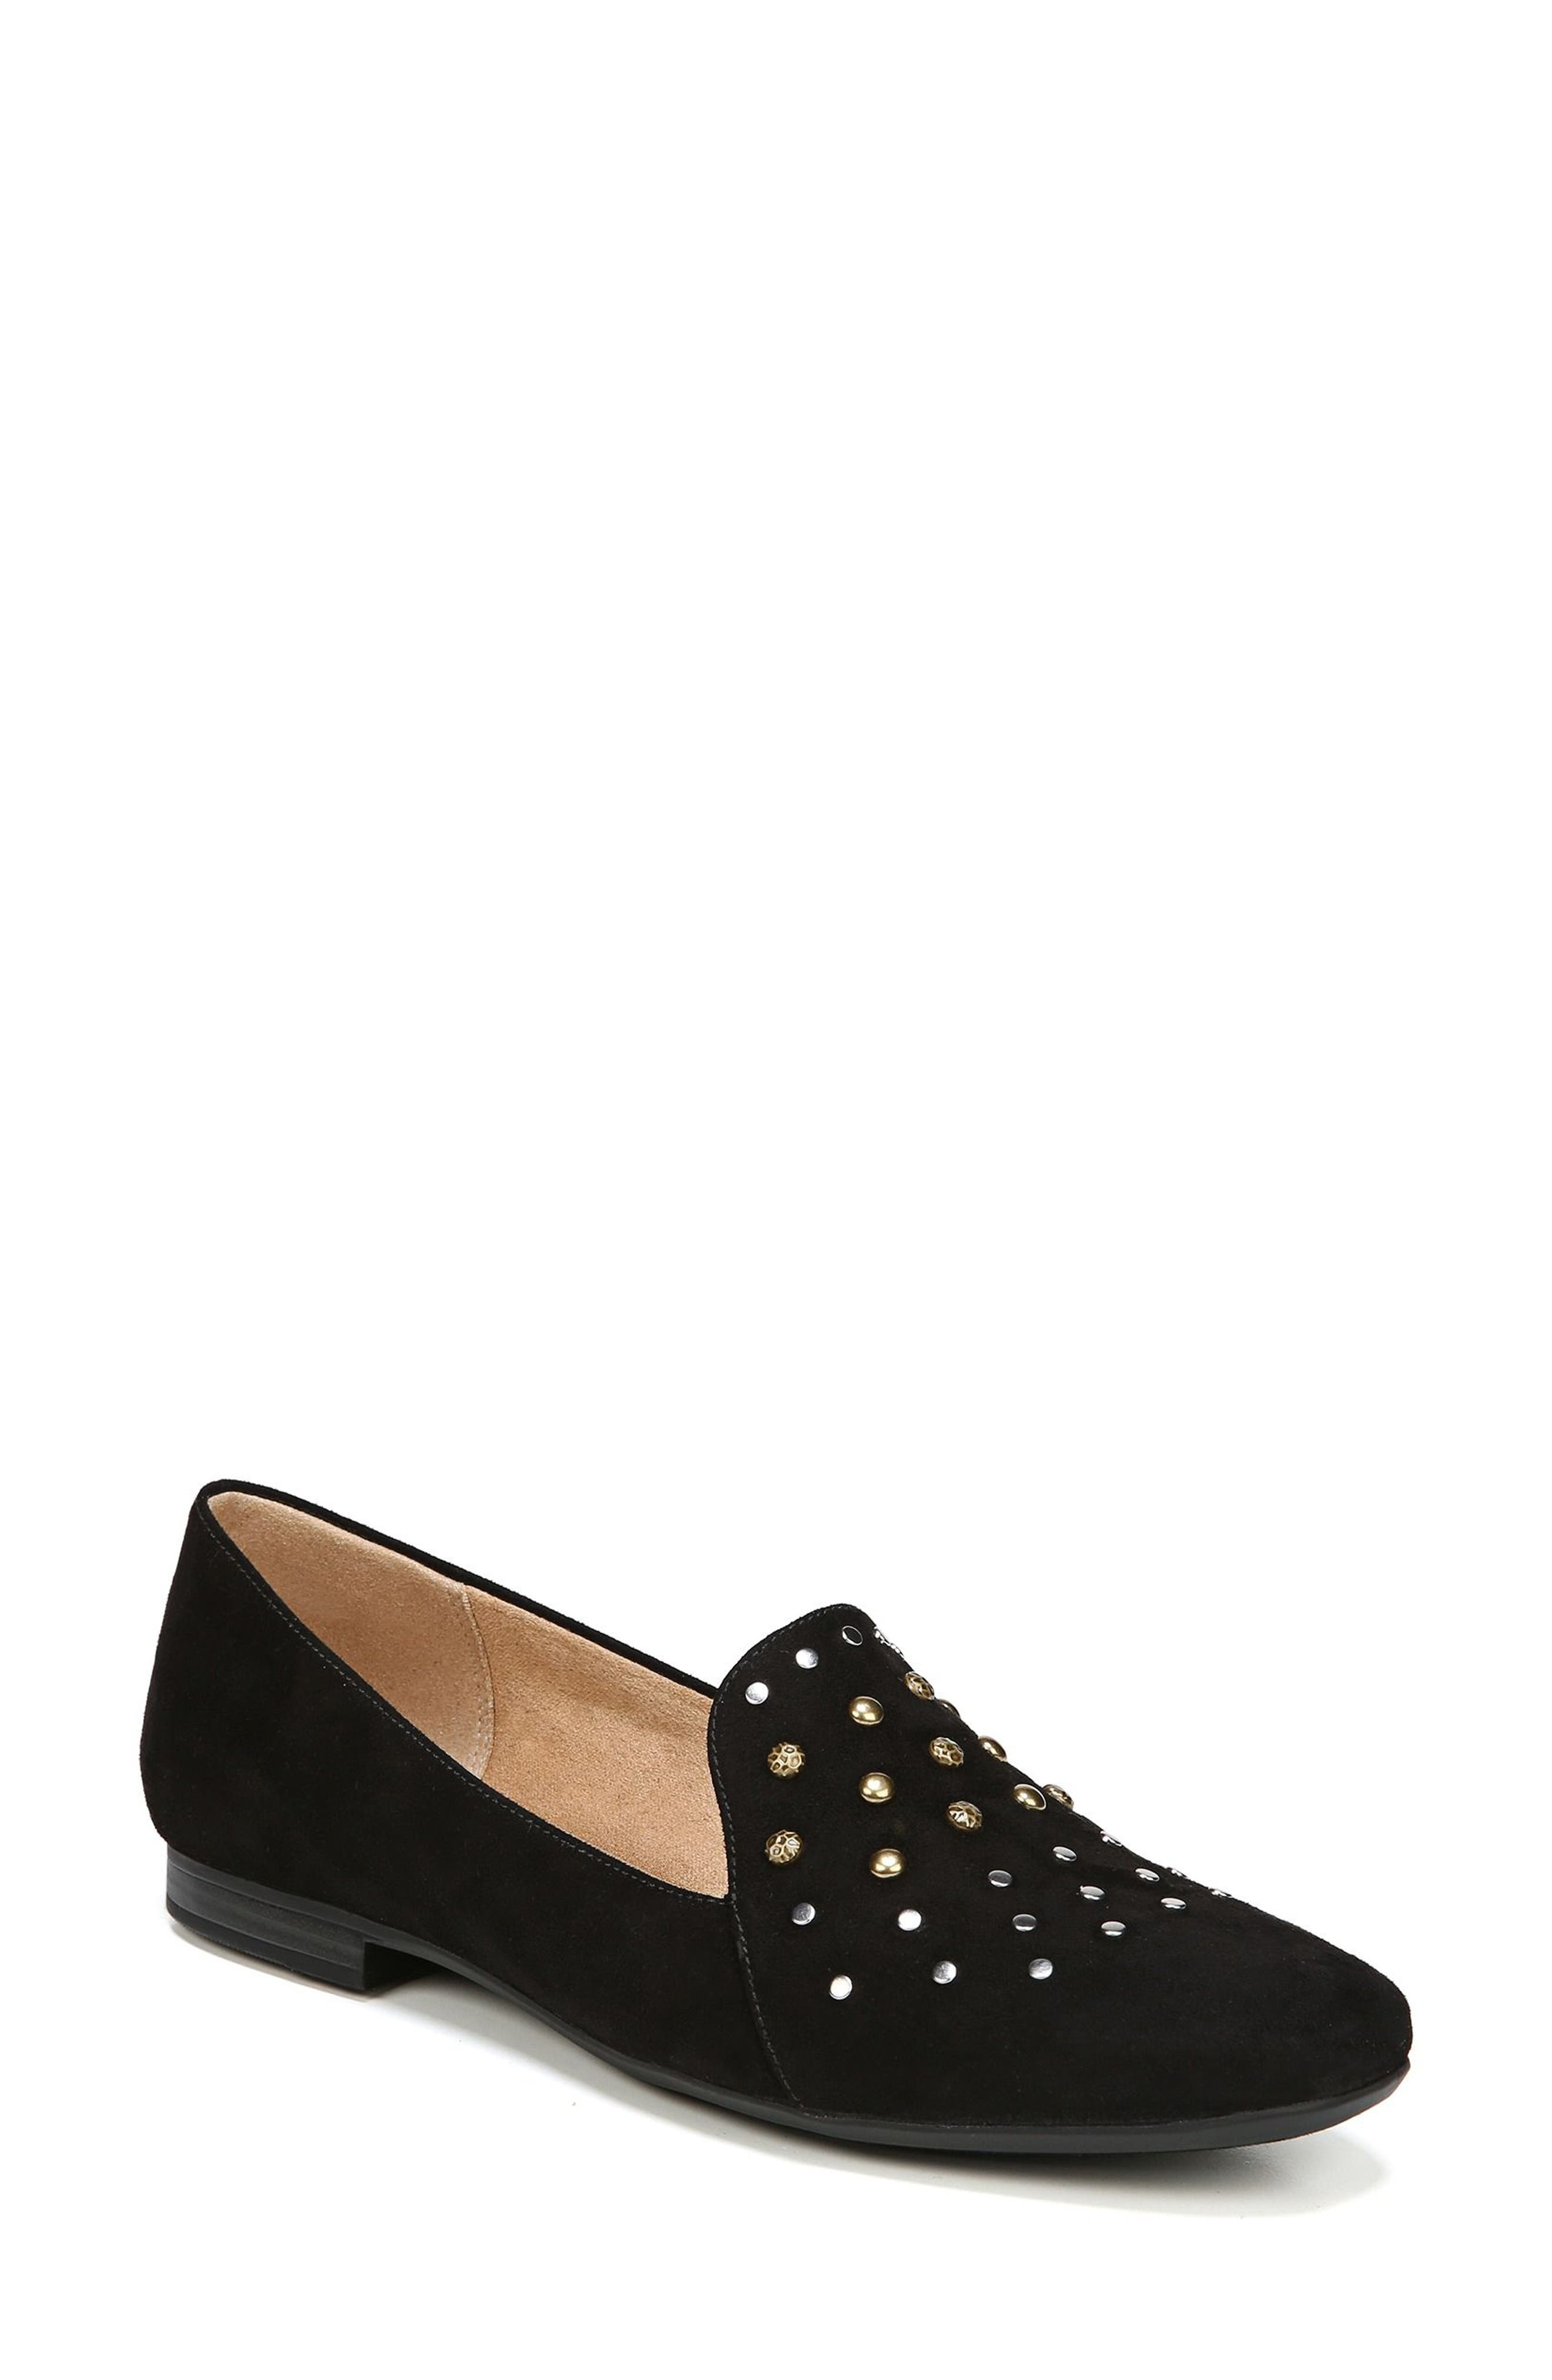 NATURALIZER, Emiline 4 Loafer, Main thumbnail 1, color, BLACK FABRIC